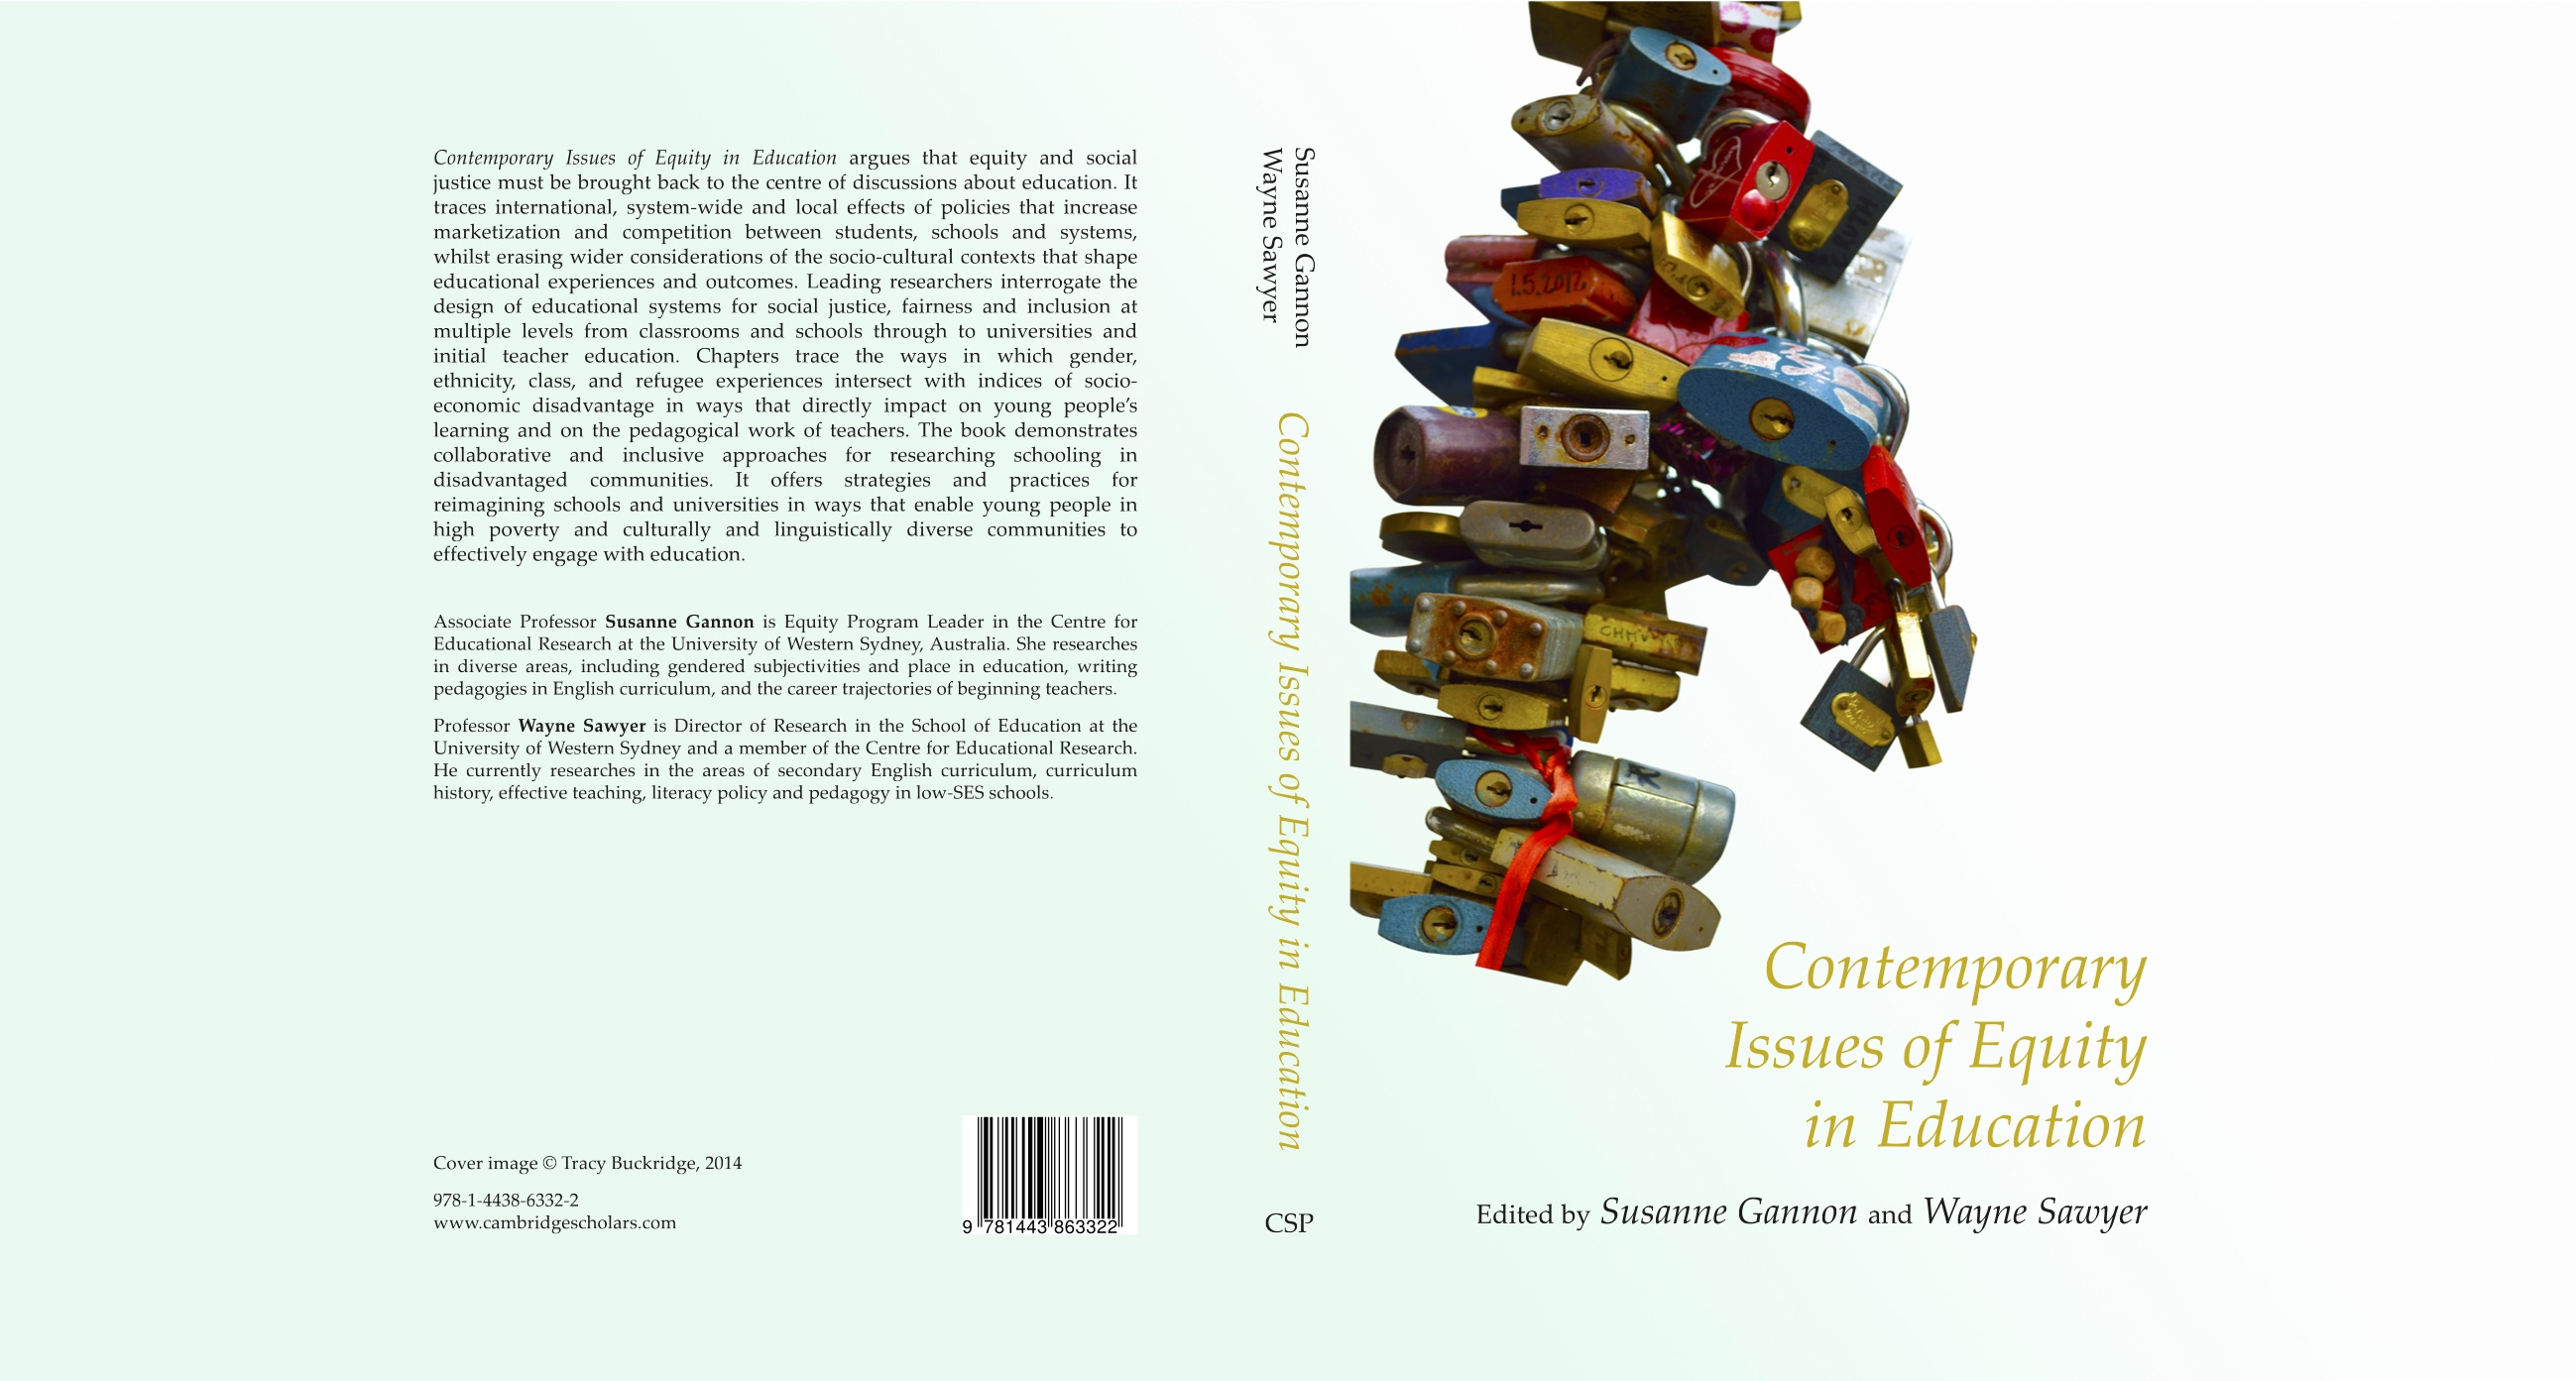 western contemporary issues Contemporary issues in western religions learning team assignment: contemporary issues in western religions paper and presentation resources: understanding religious beliefs and traditions ii simulation.